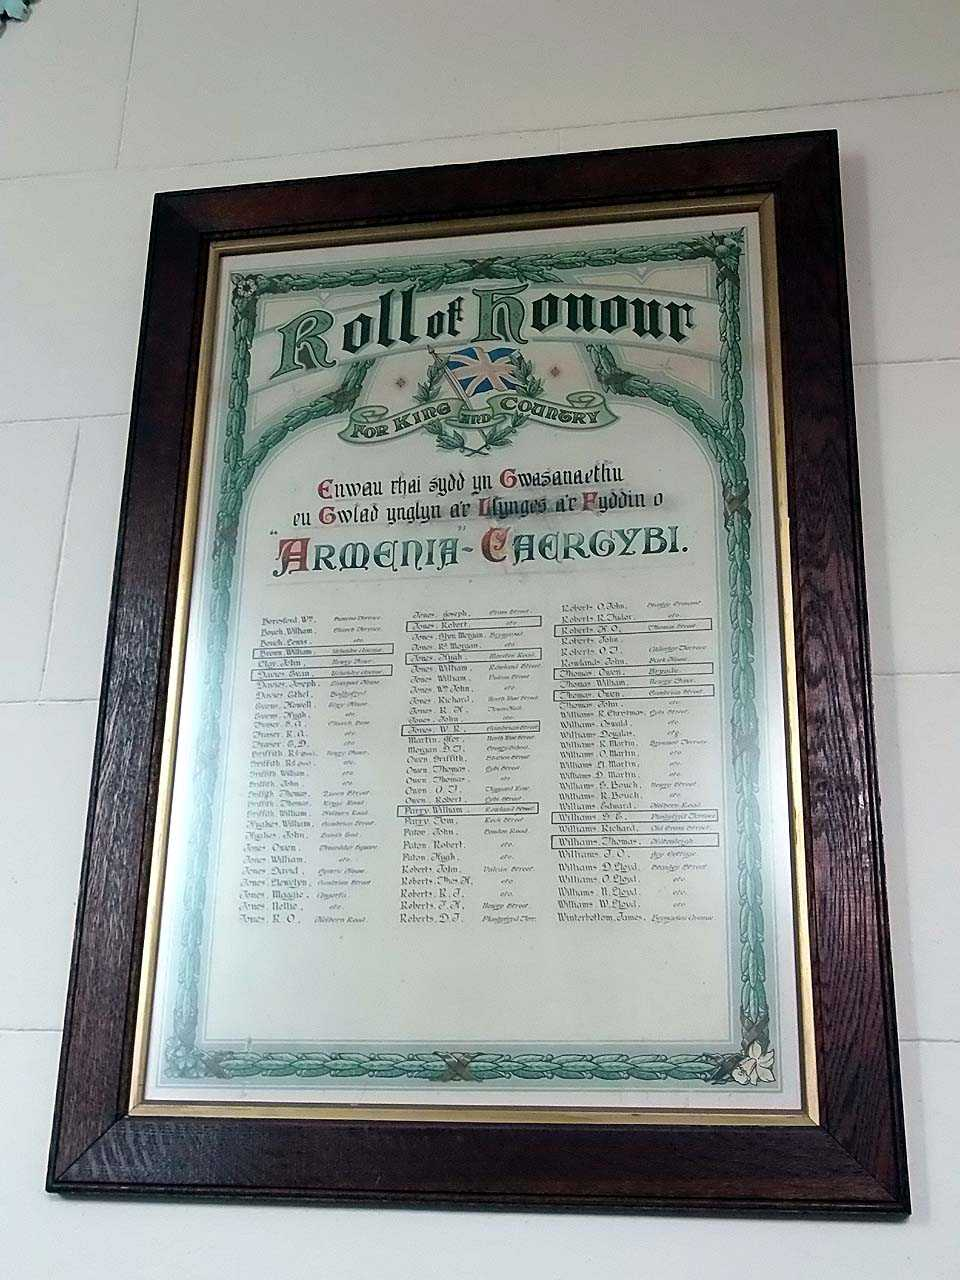 Anglesey, Holyhead, Armenia Chapel Roll of Honour